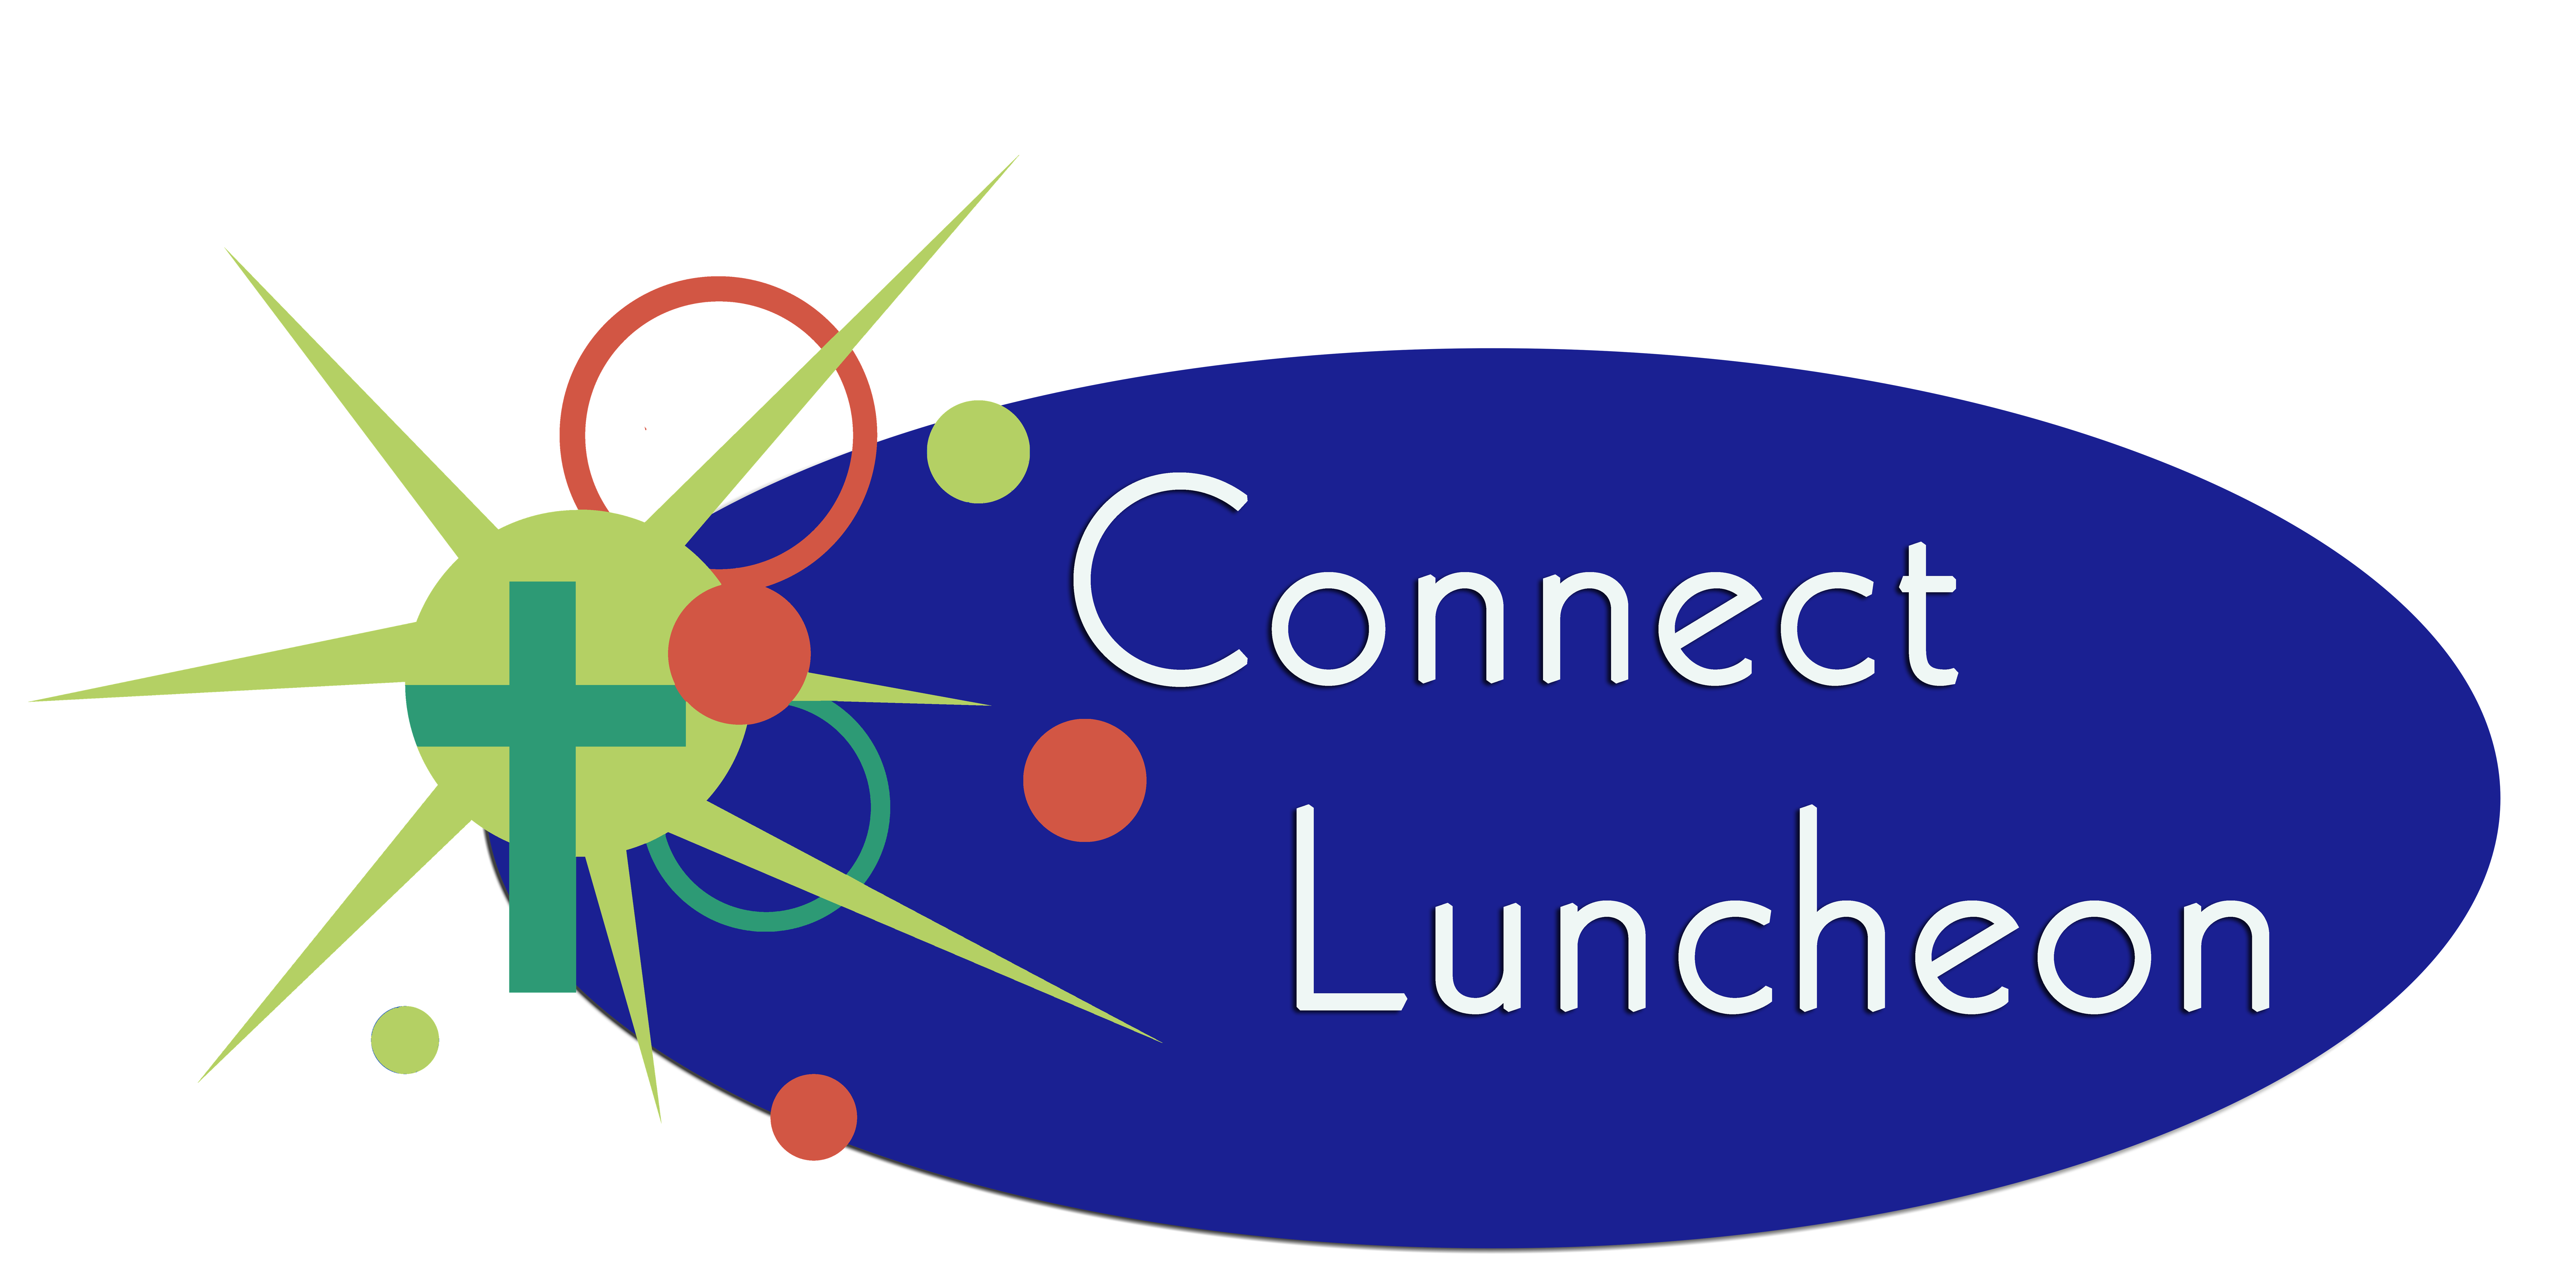 Connect luncheon